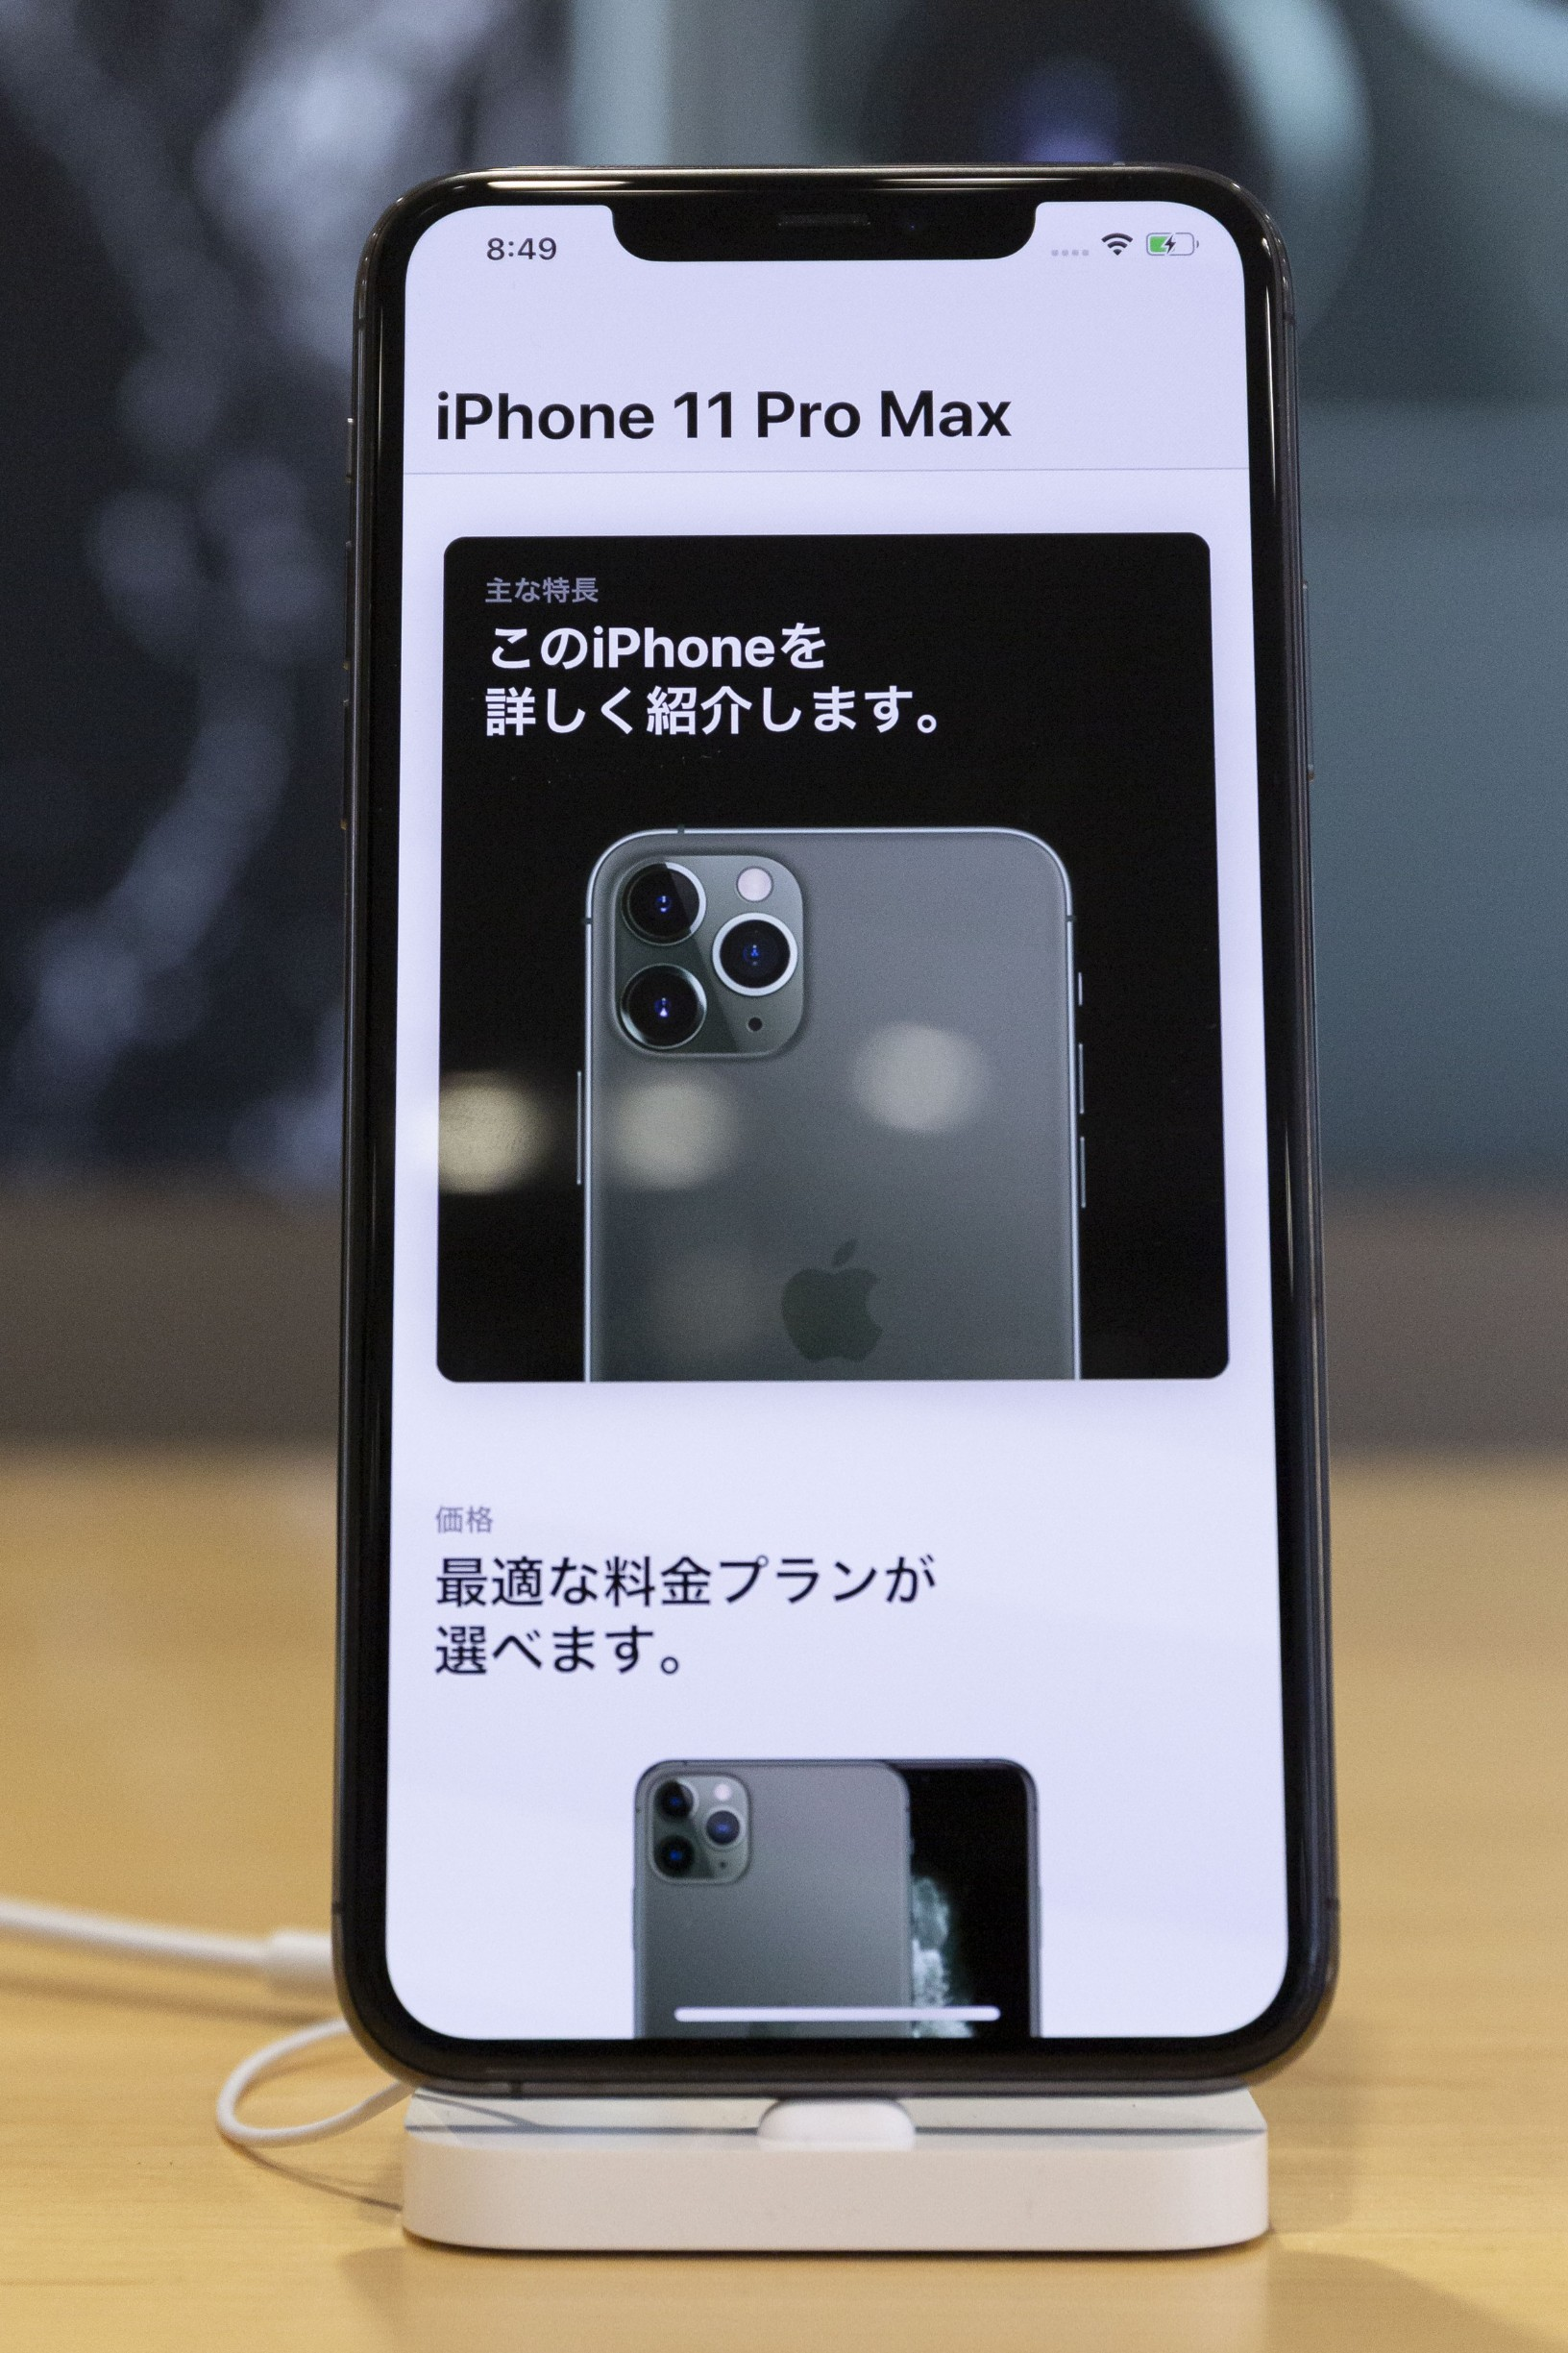 September 20, 2019, Tokyo, Japan: Apple's new iPhone 11 Pro Max on display at SoftBank store in Ginza. The new iPhone 11 costs JPY 89,280 for the 64GB model, iPhone 11 Pro JPY 127,200 for the 64GB model, iPhone 11 Pro Max JPY 142,560 for the 64GB model and Apple Watch Series 5 costs from JPY 58,320., Image: 471920968, License: Rights-managed, Restrictions: , Model Release: no, Credit line: Profimedia, Zuma Press